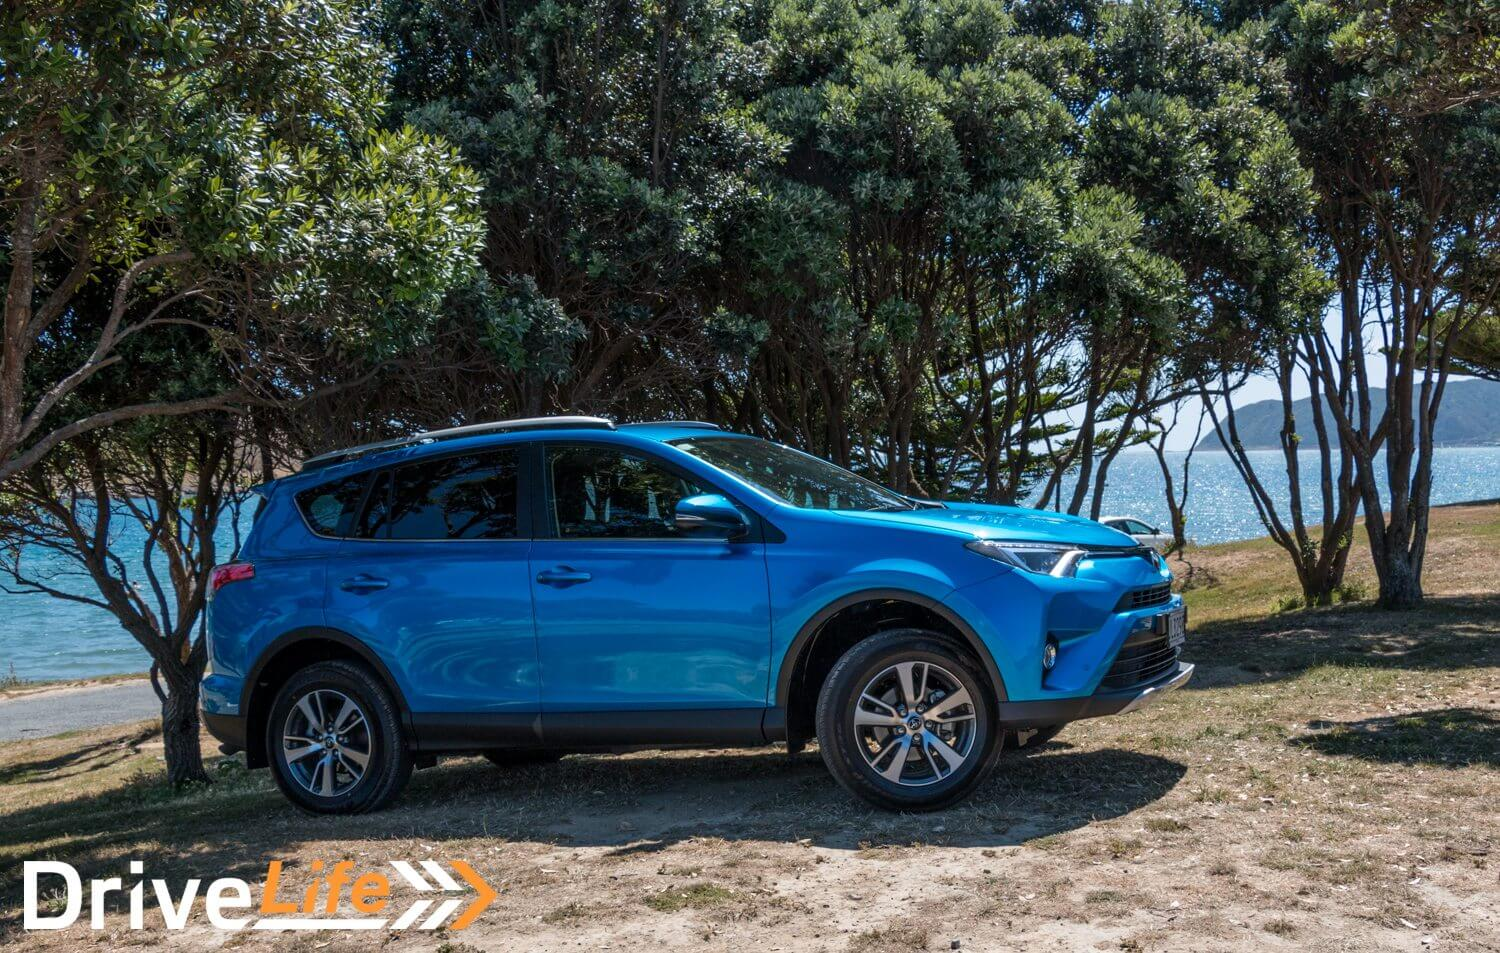 hight resolution of drive life nz car review toyota rav4 gxl